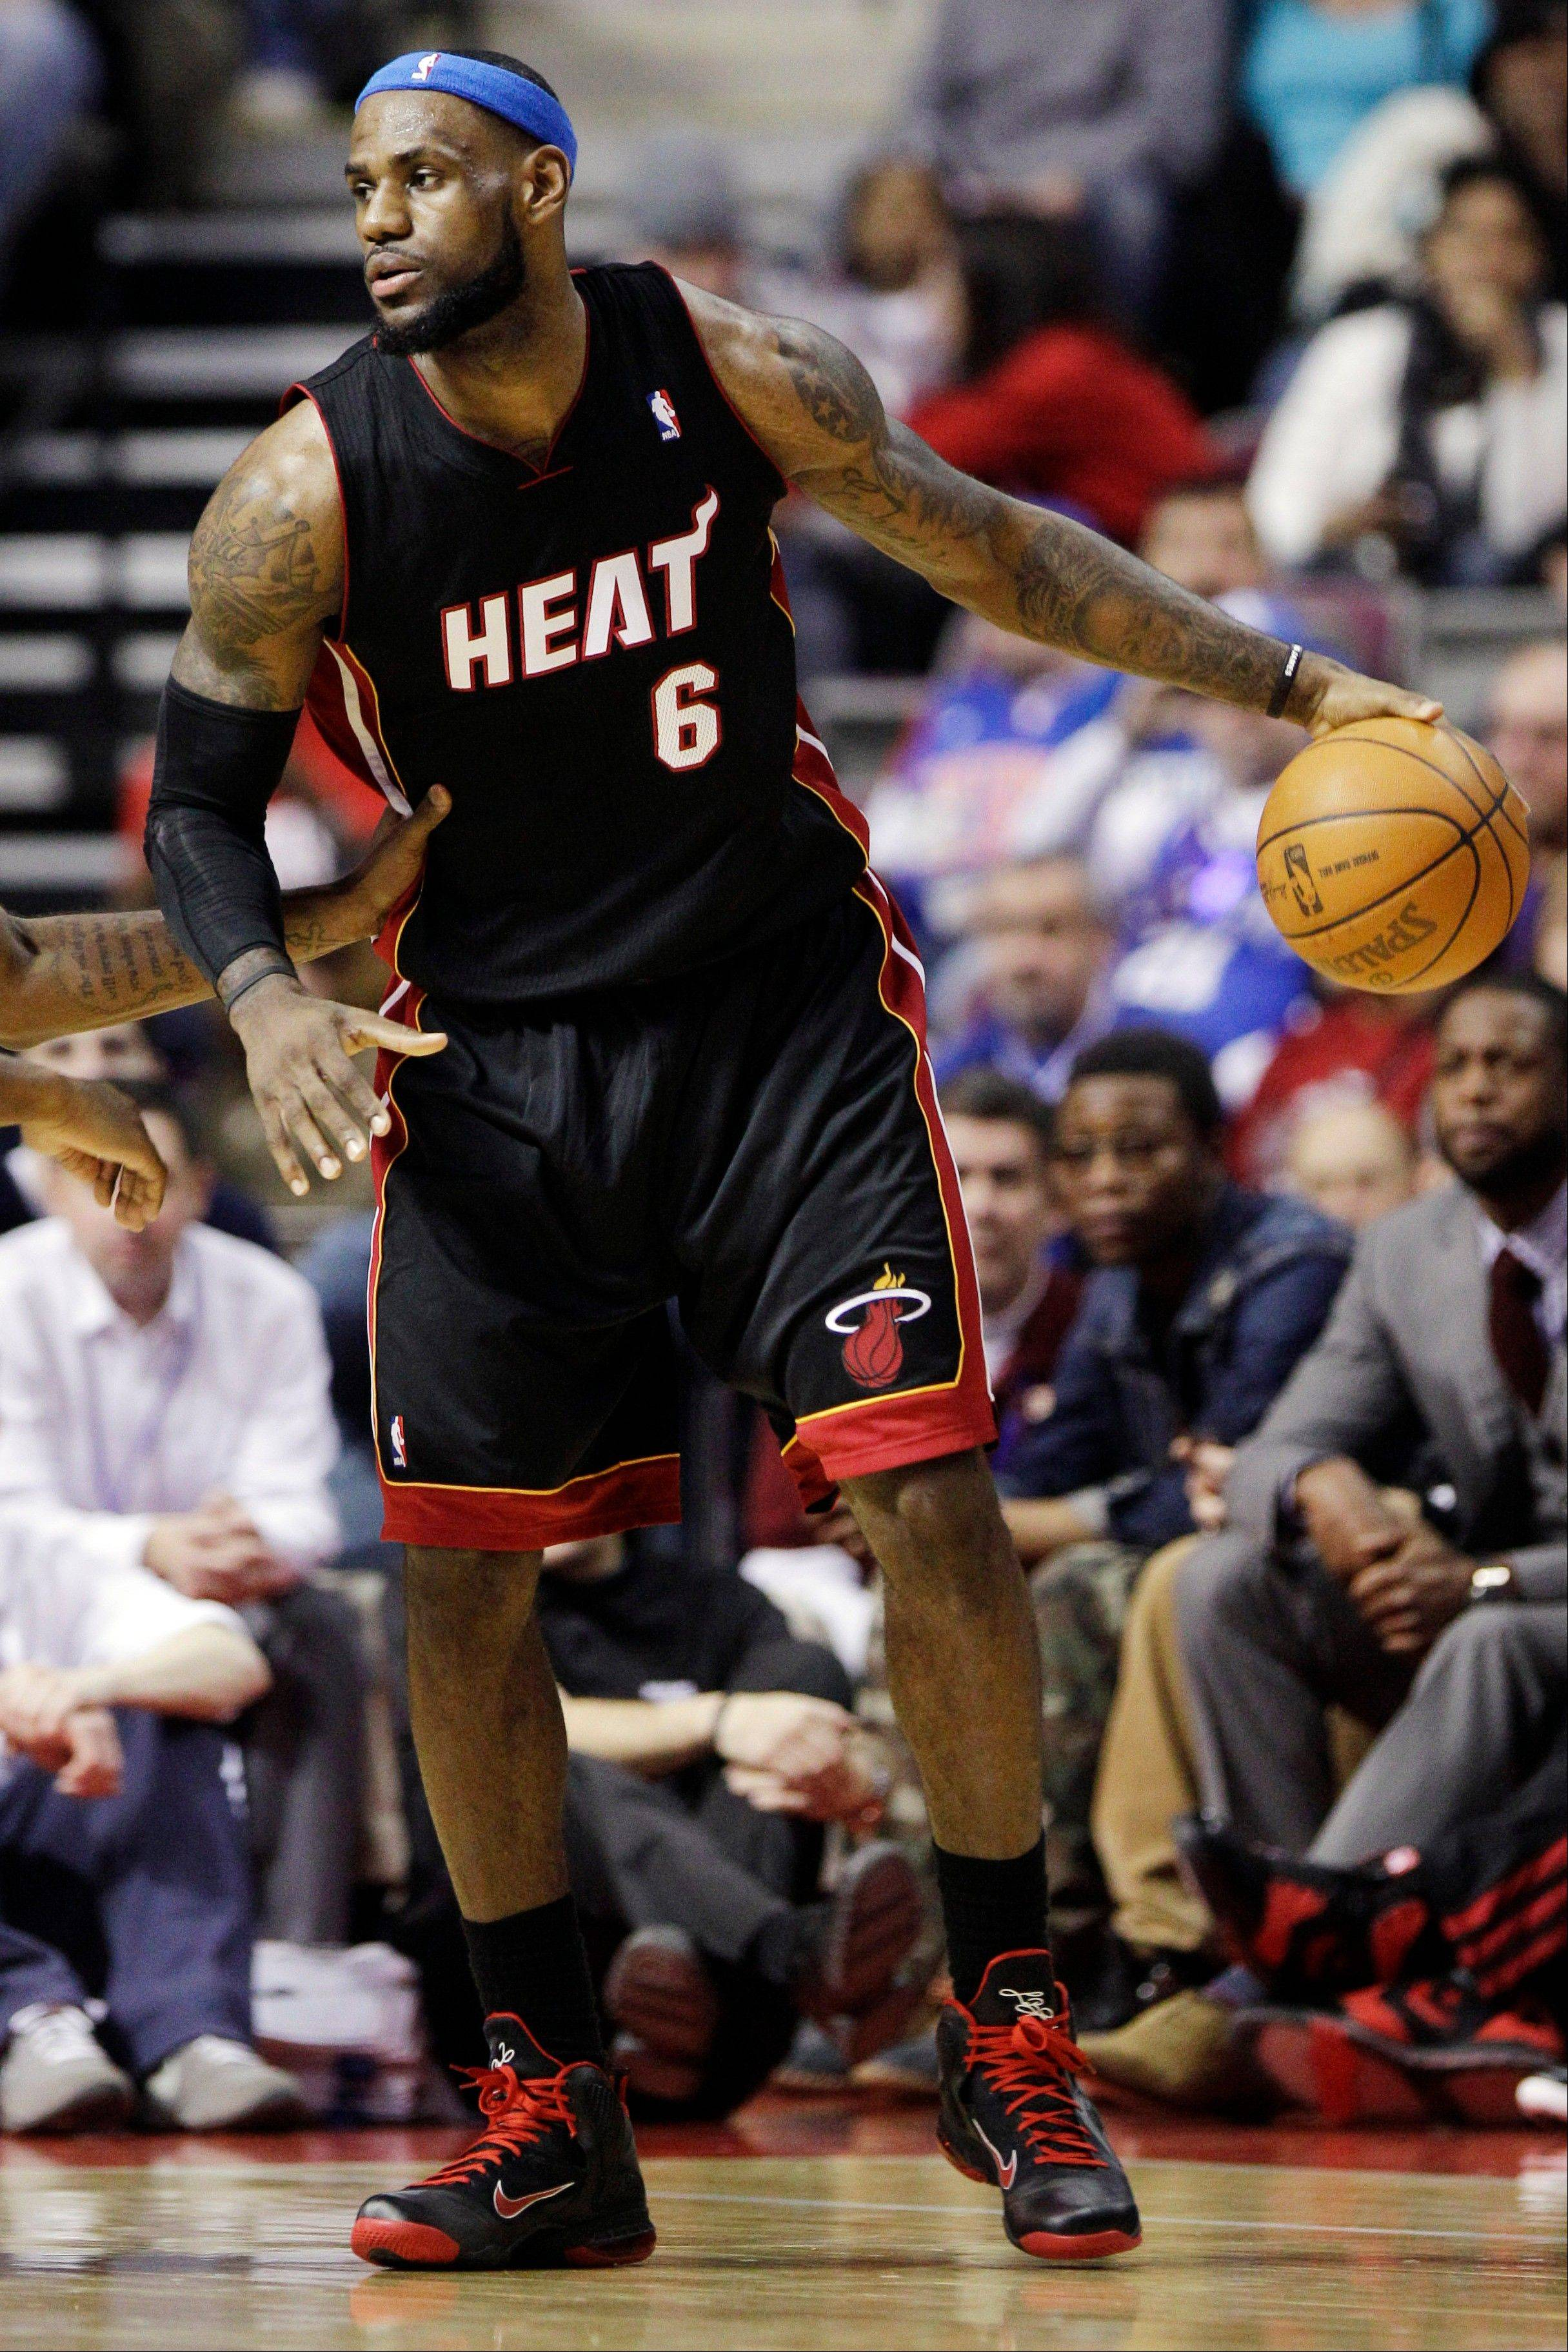 Miami Heat forward LeBron James dribbles Wednesday during the first quarter.